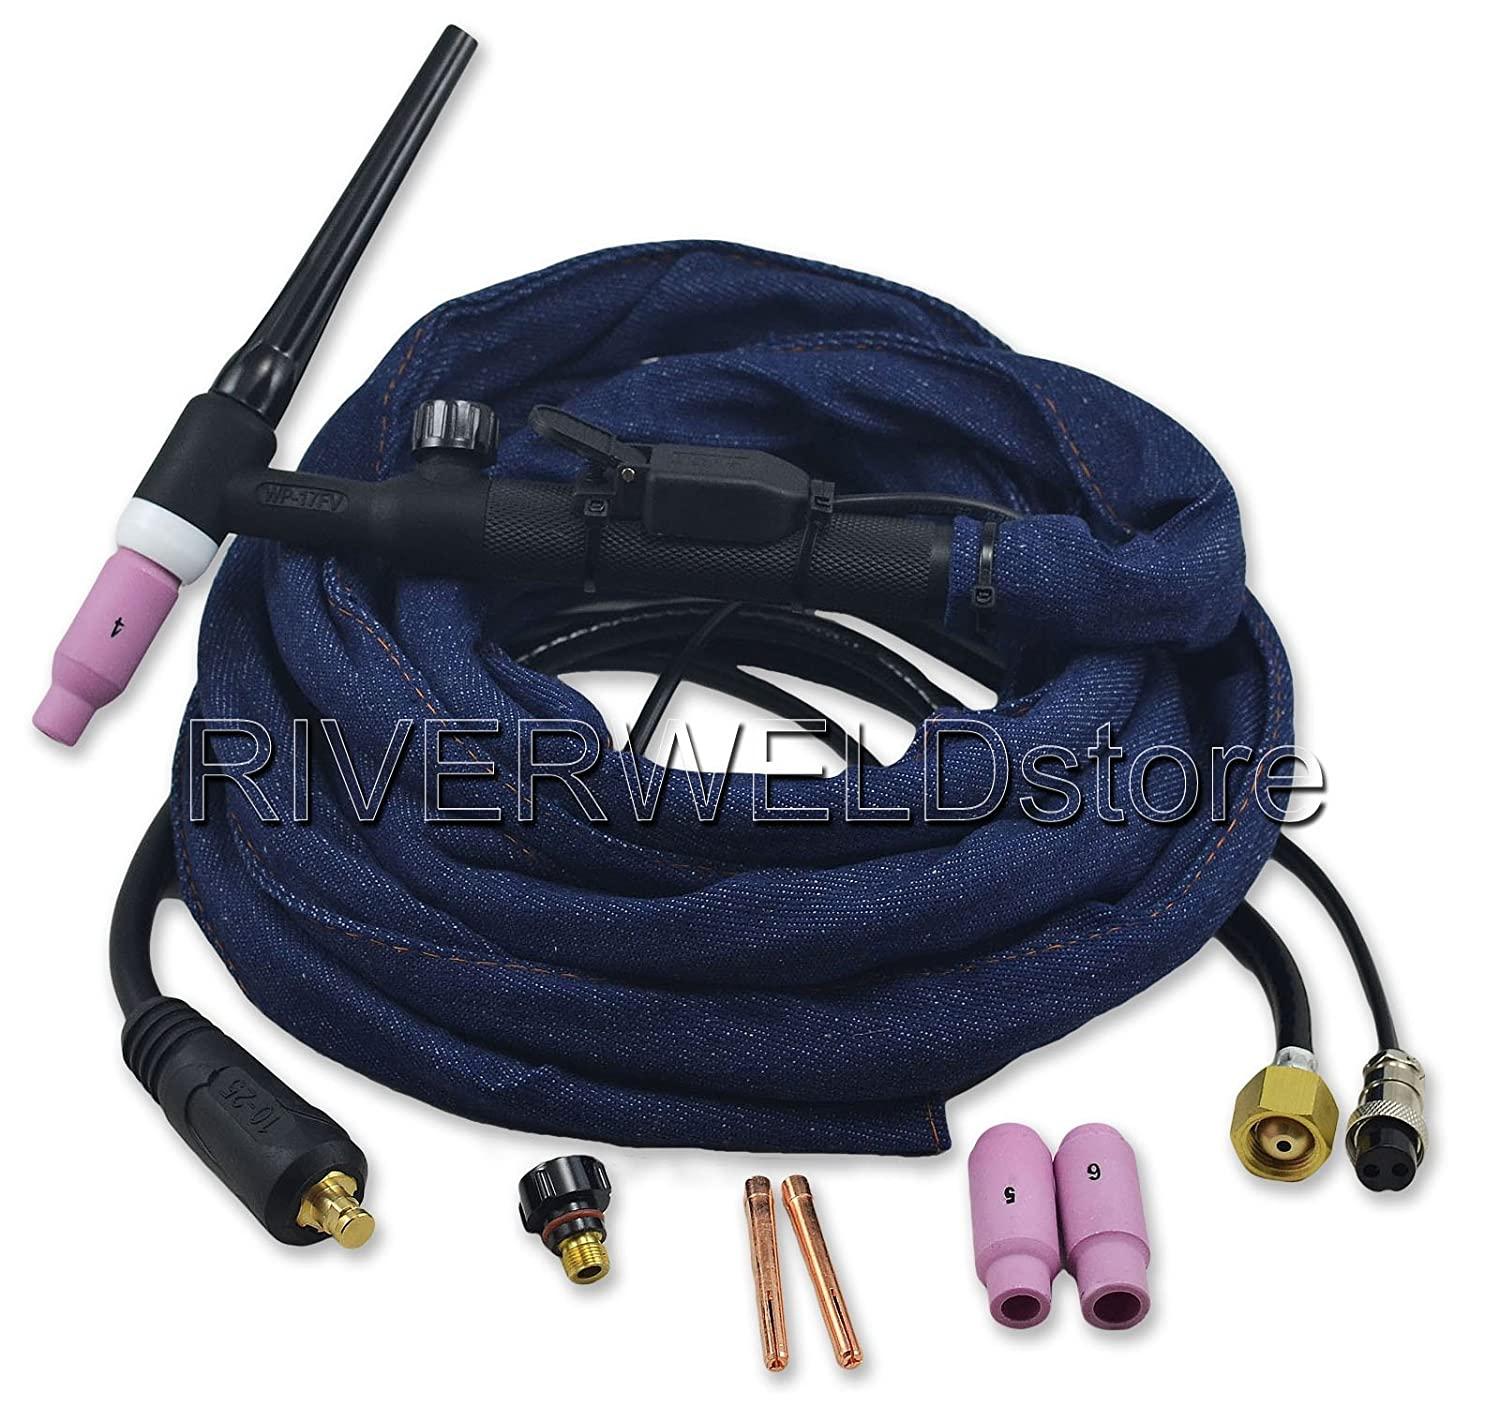 WP-17FV-12 12-Foot 150Amp Tig Welding Torch Complete With Flexible & Valve Head RIVERWELDstore